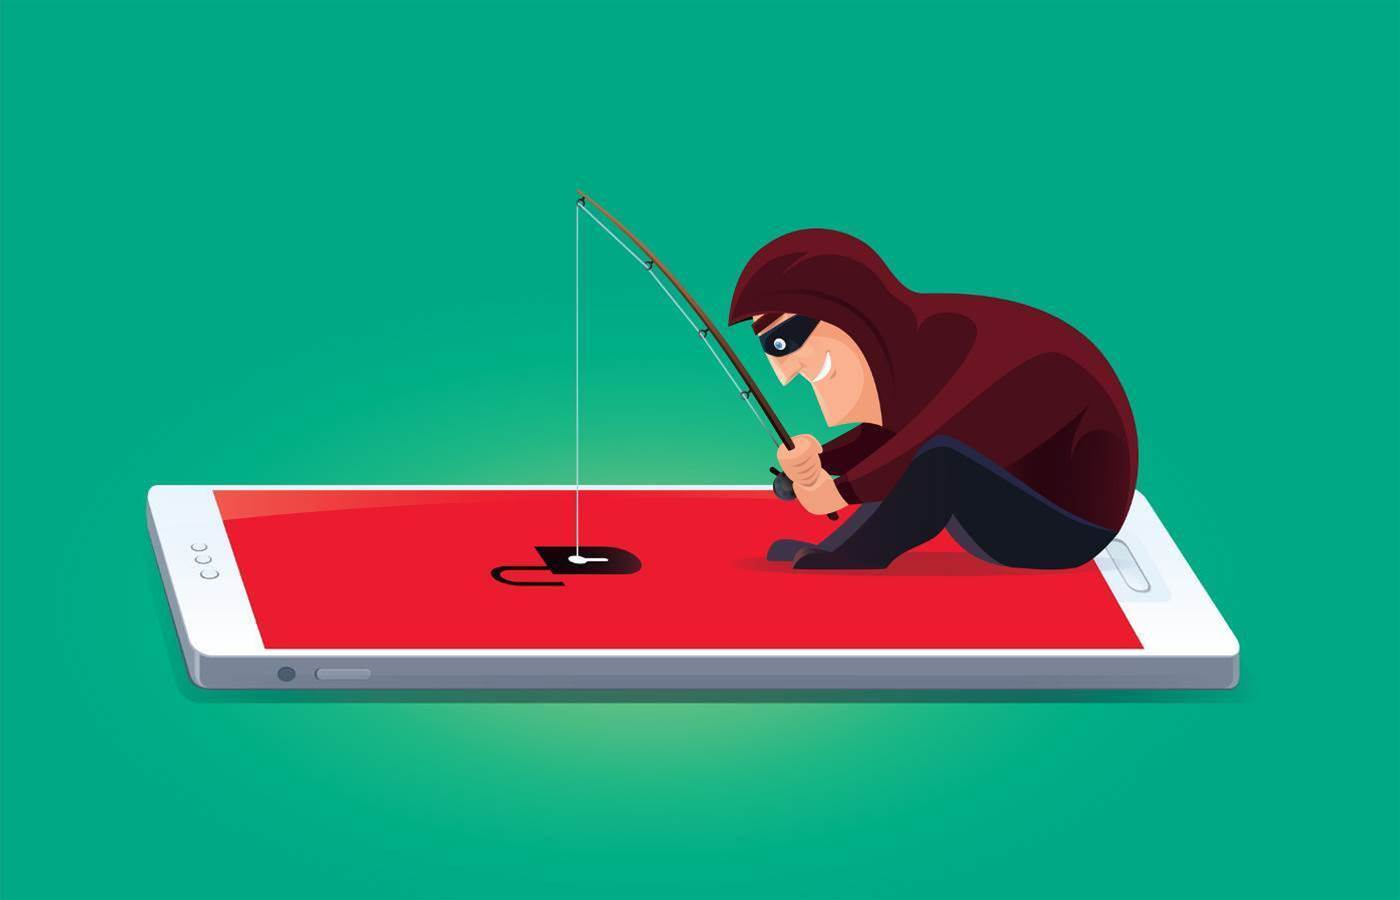 Aussie banks under attack by targeted mobile malware